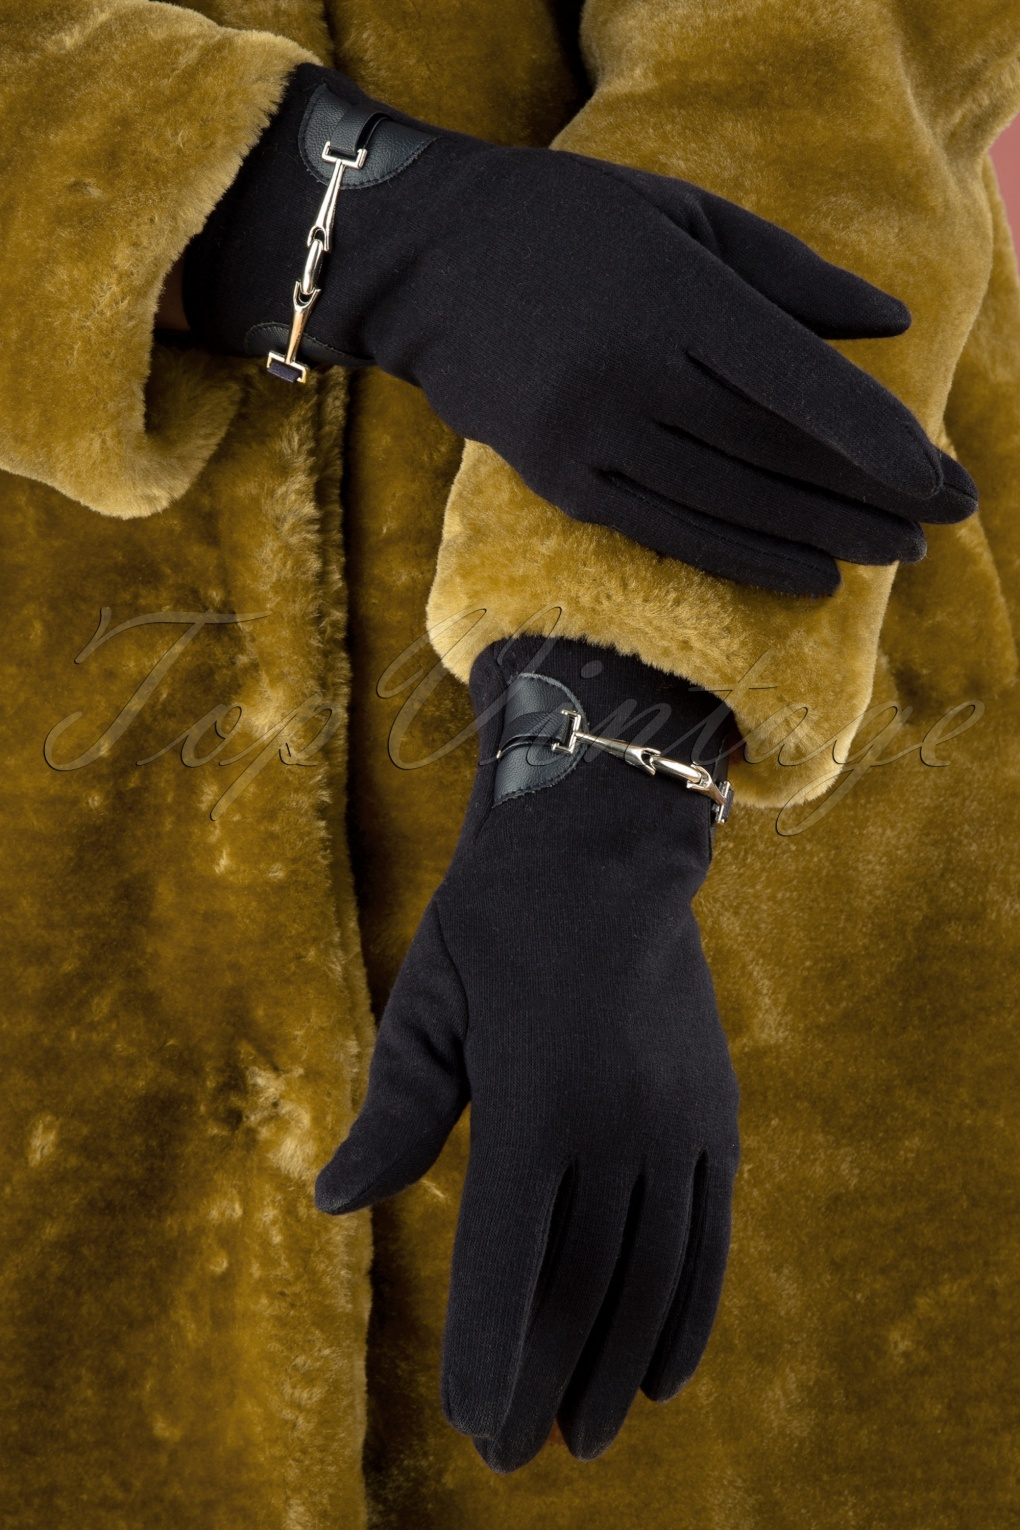 Vintage Style Gloves- Long, Wrist, Evening, Day, Leather, Lace 50s Elegant Gloves in Dark Blue £15.09 AT vintagedancer.com